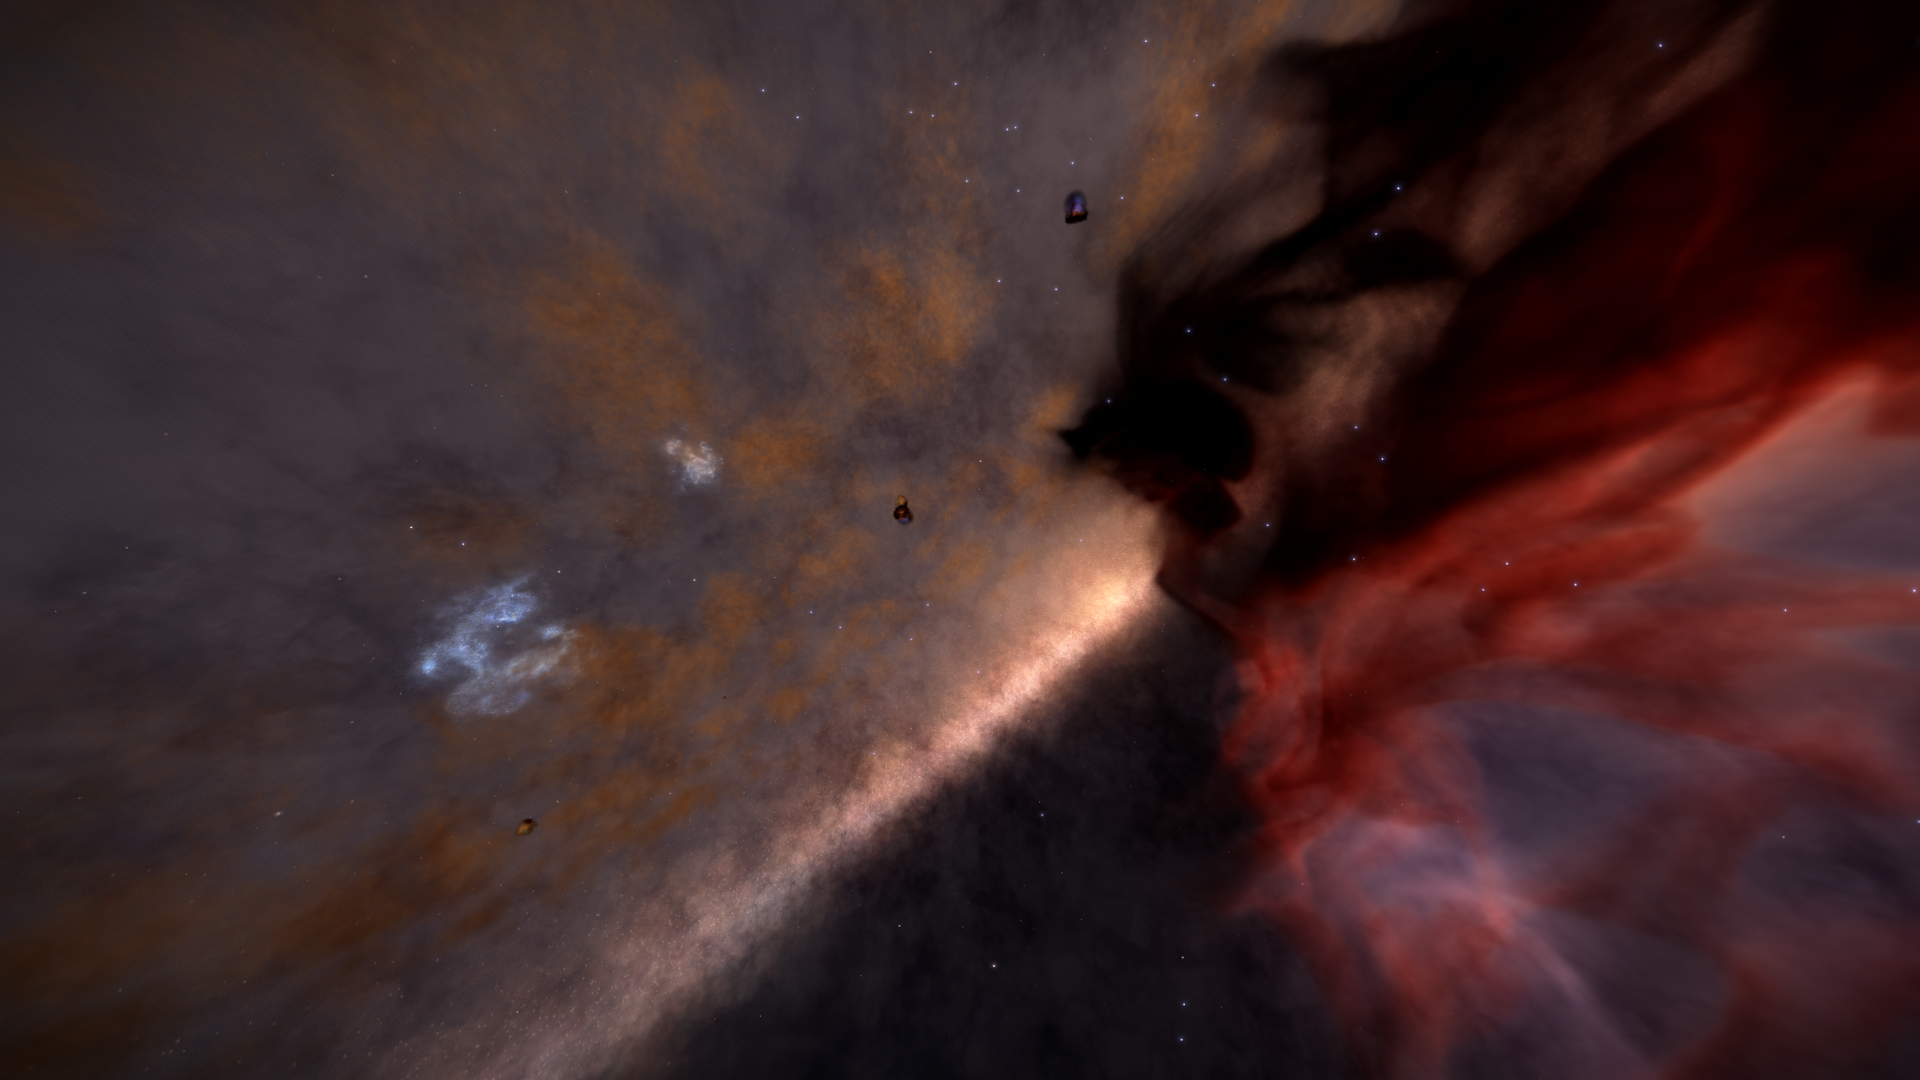 Elite Dangerous Exploring Nebula